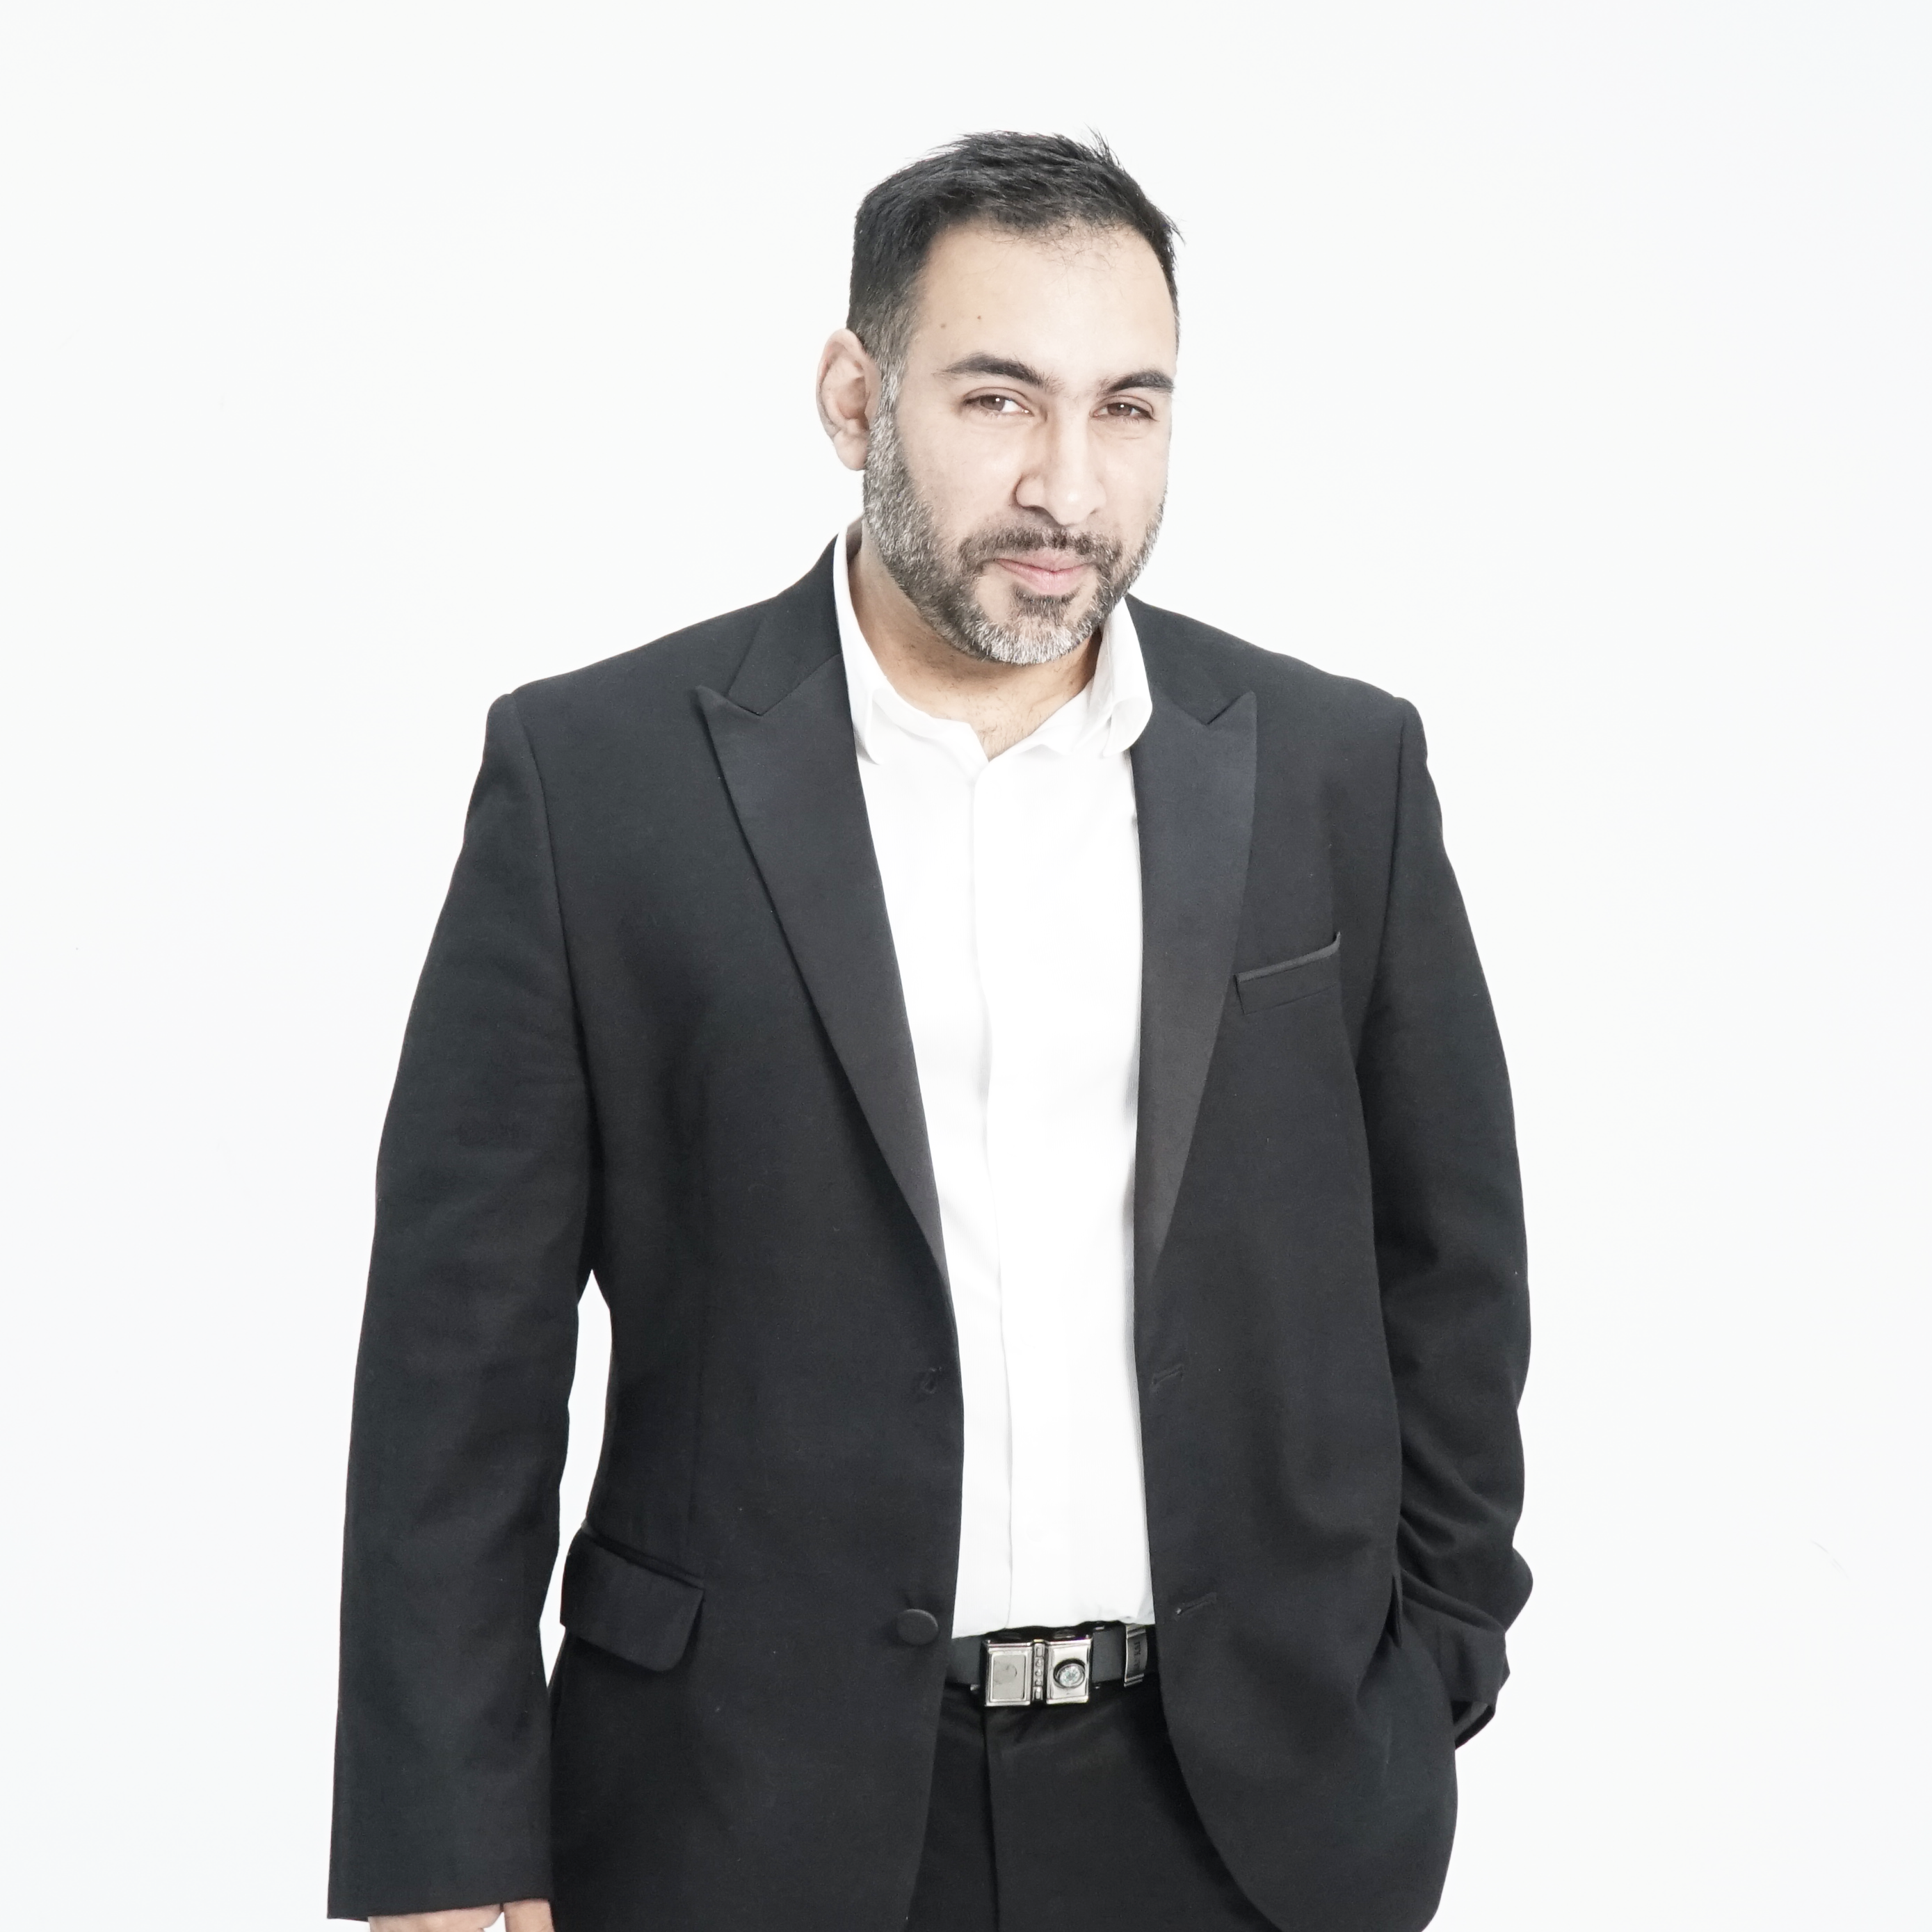 Javvad Malik Security Advocate, AlienVault - Top Cyber Security Influencers of 2018